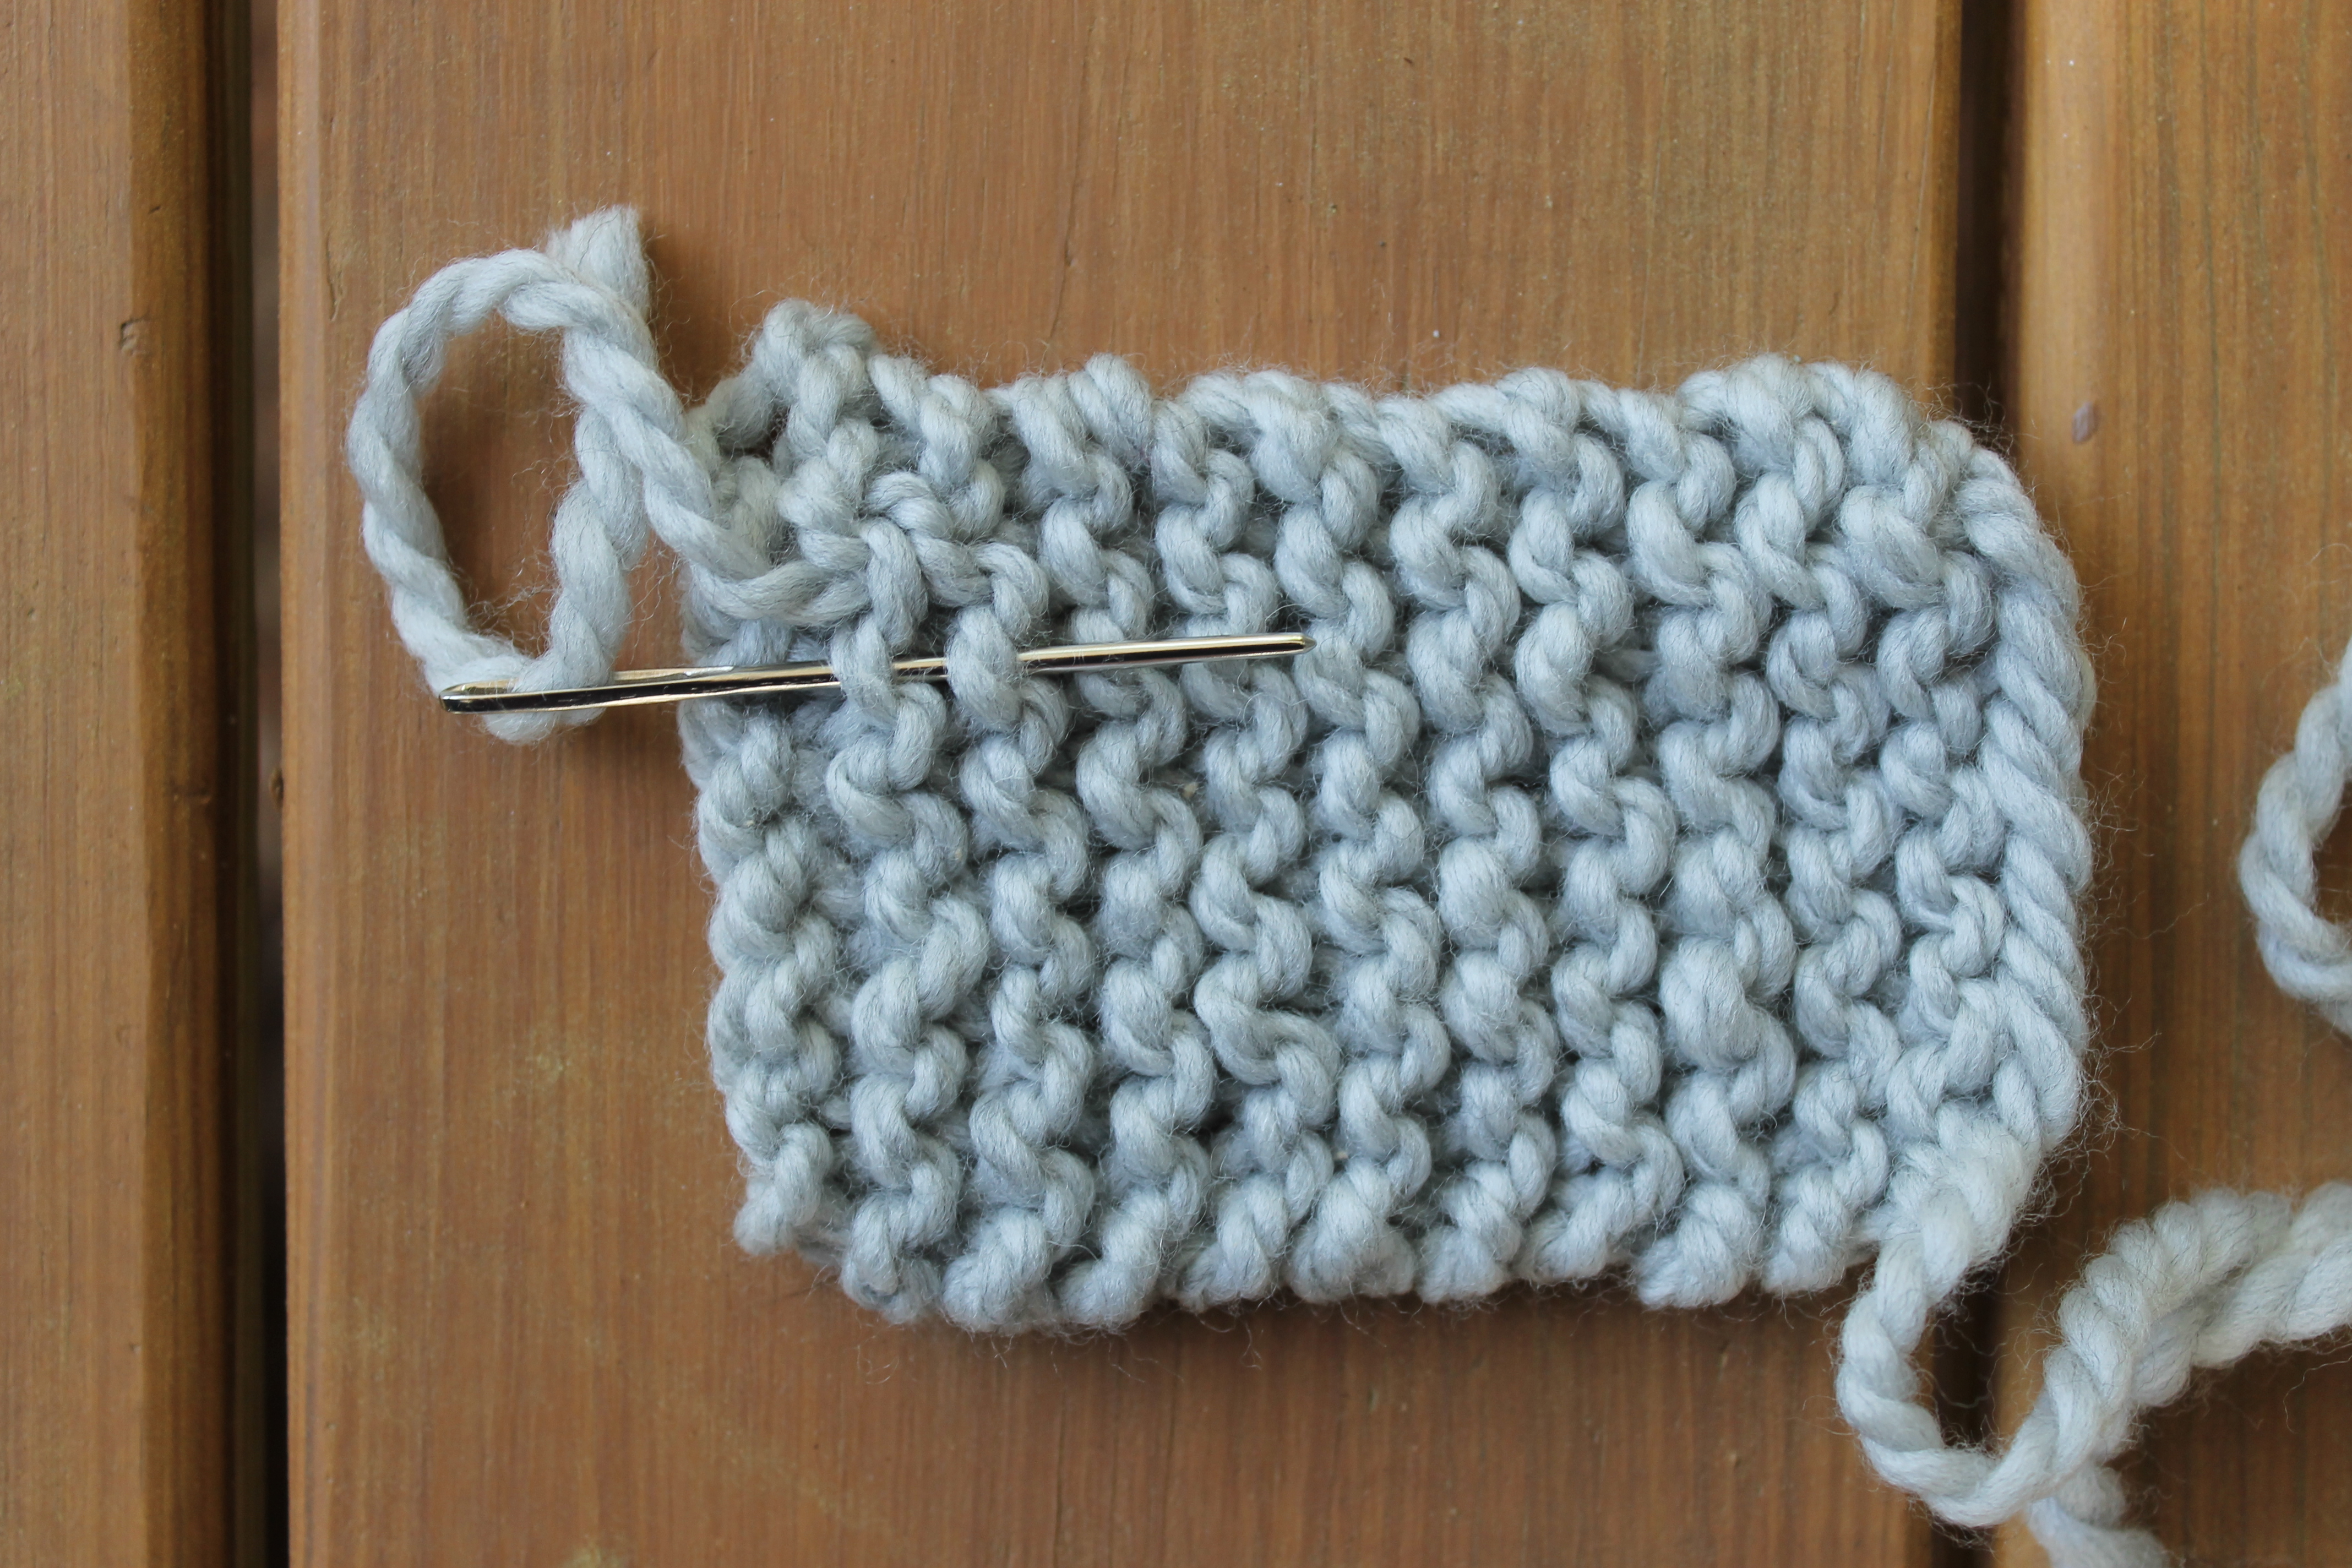 Weaving in the ends for knitting a bow